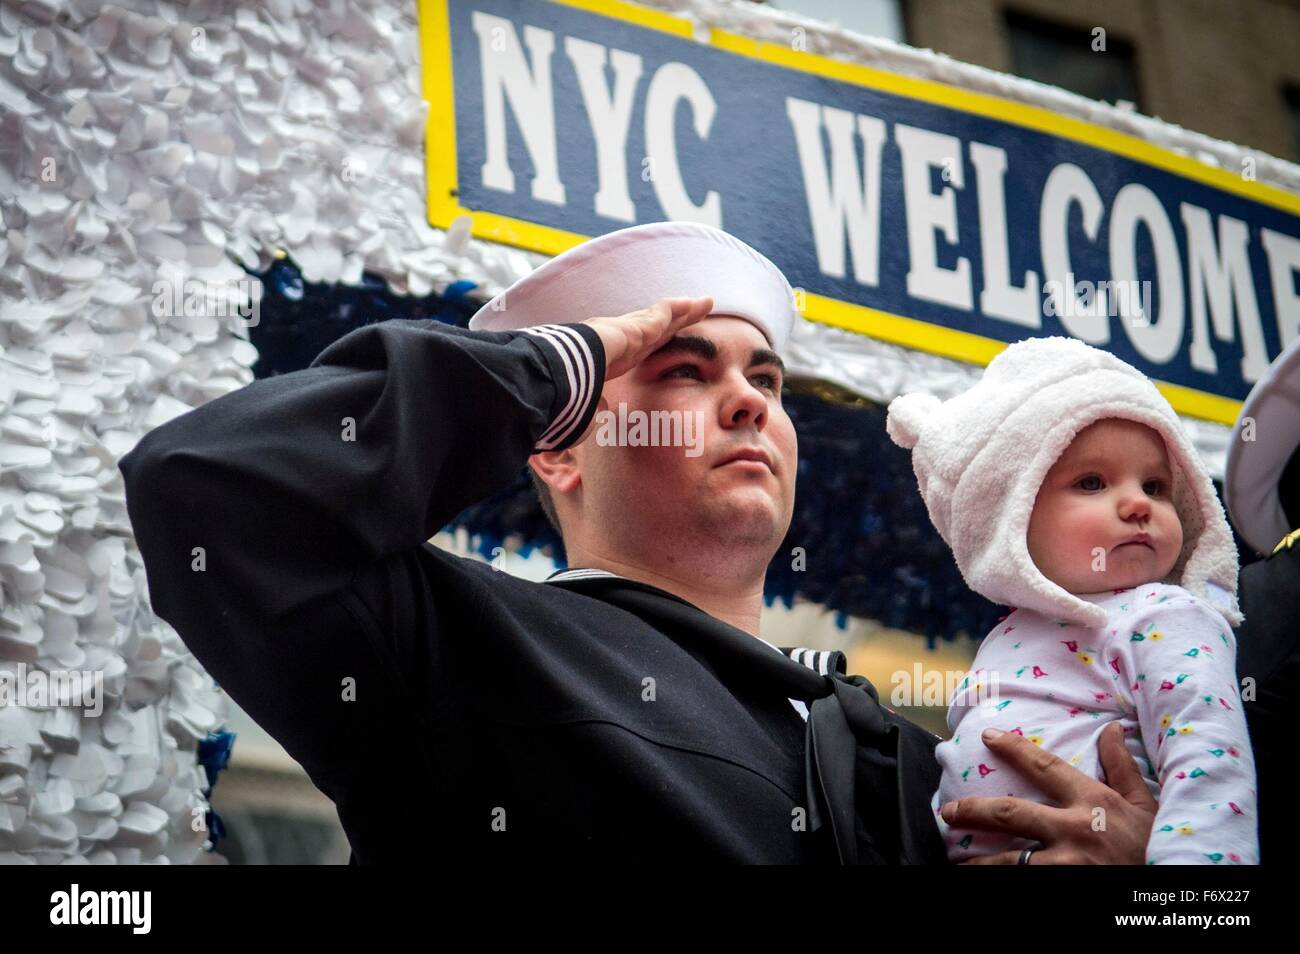 U.S. Navy sailor Petty Officer Collin Gomez salutes during the annual Veterans Day parade during Veterans Week activities November 11, 2015 in New York City, NY. Stock Photo